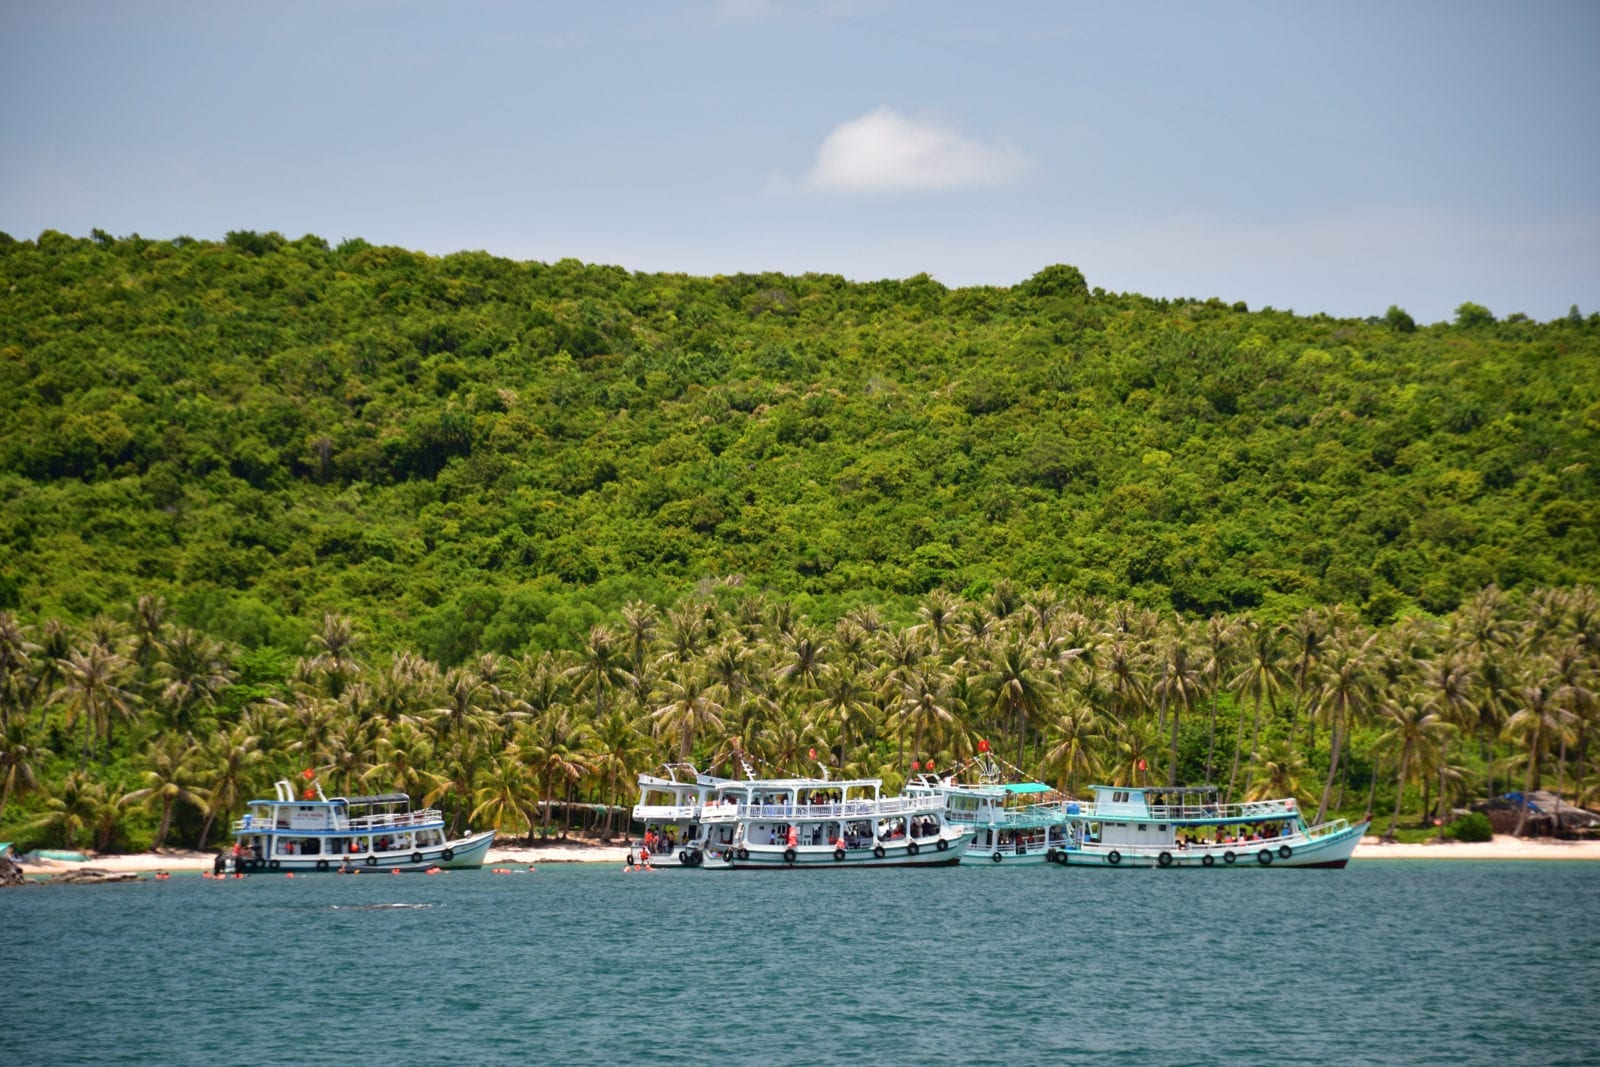 Snorkeling at Hon Thom in Phu Quoc